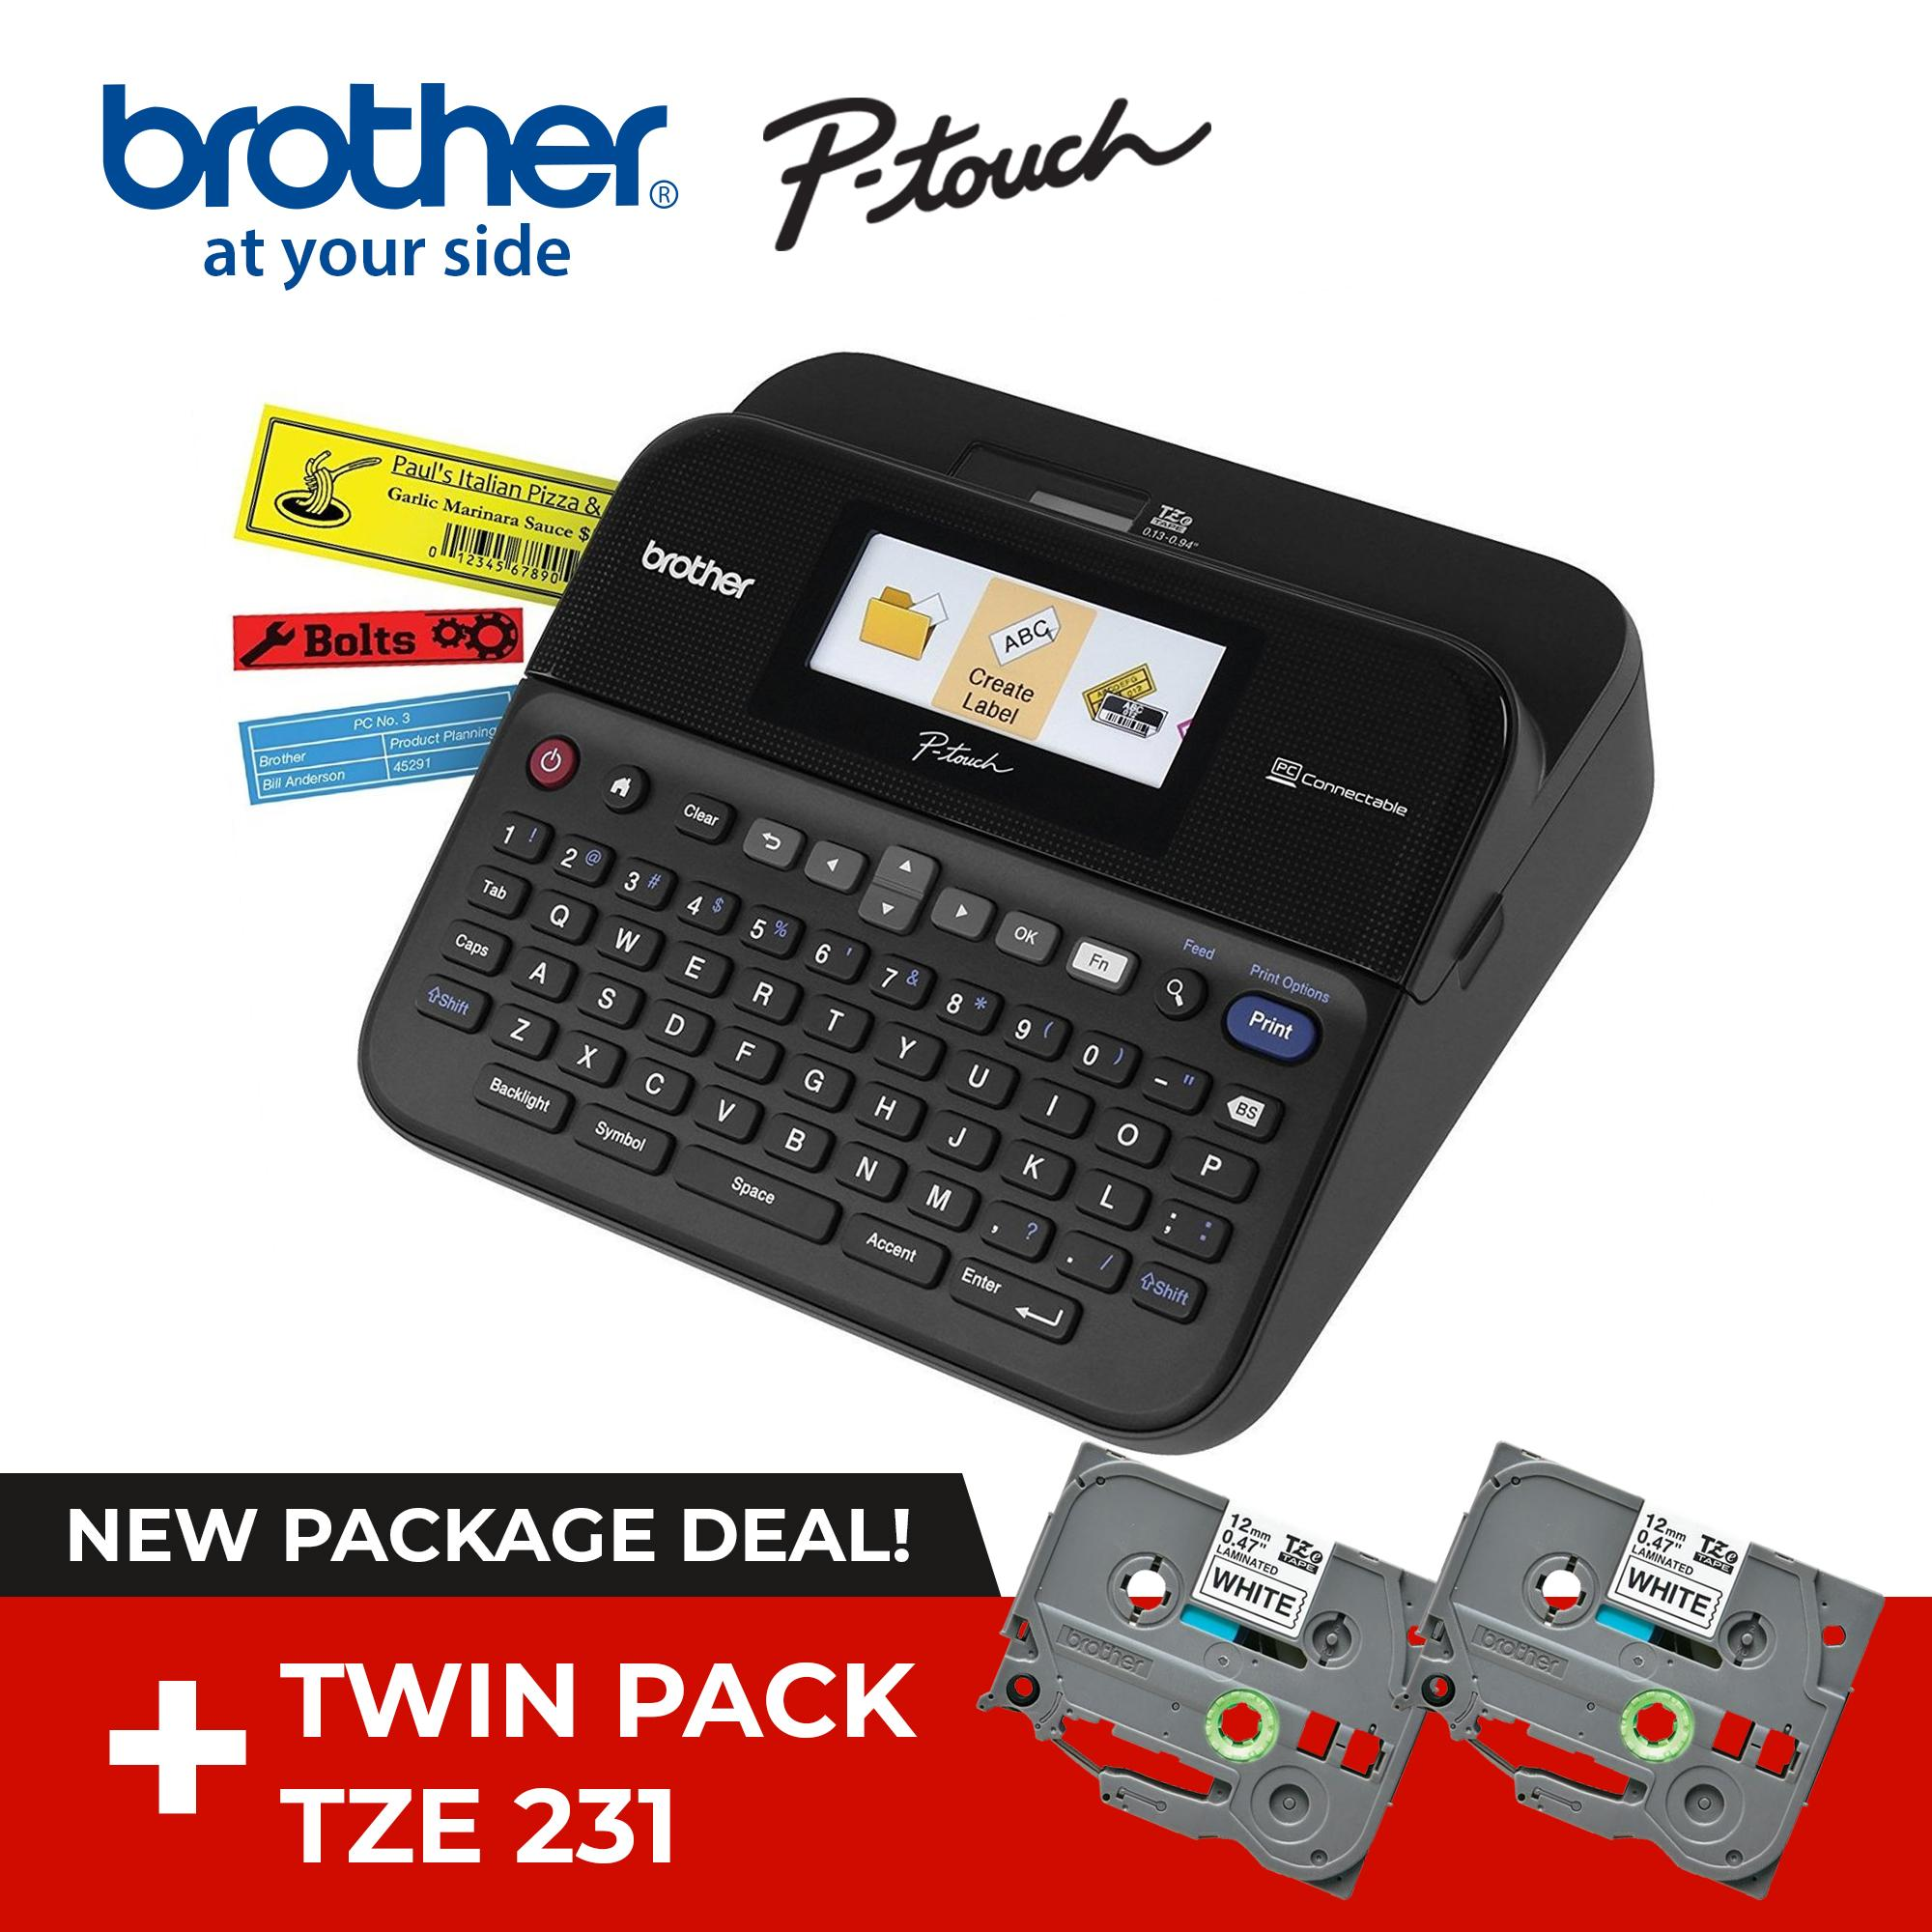 Brother PT-D600 Label Maker with Twin Pack TZE 231